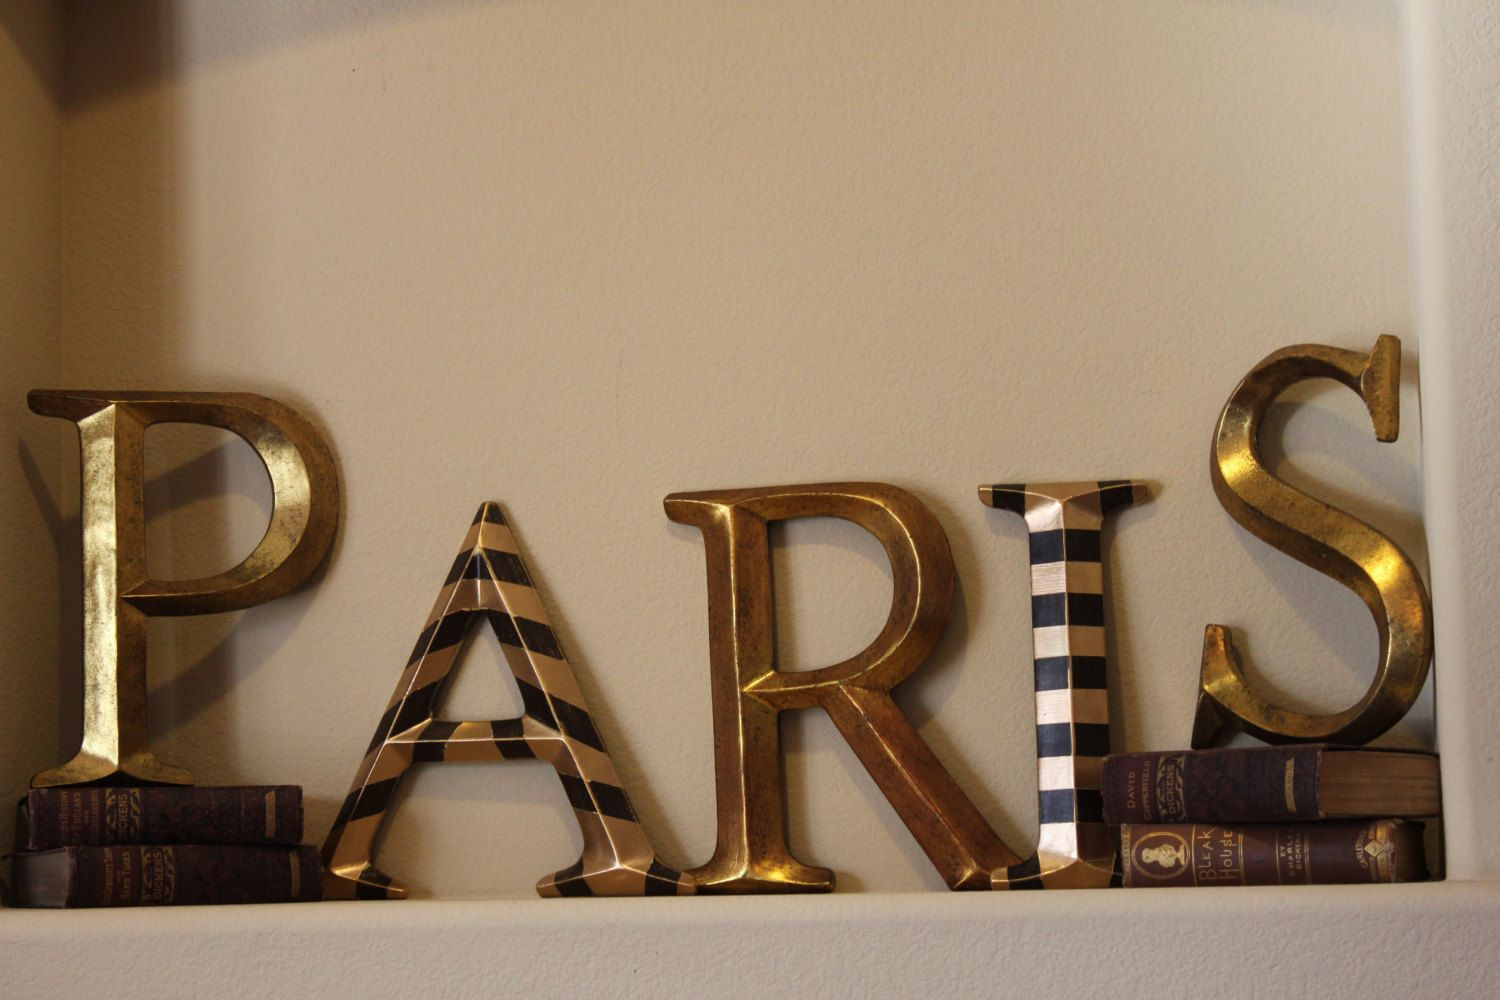 Paris France French Pottery Barn Style Shabby Chic Decor Wall Letter Set 74 95 Via Etsy